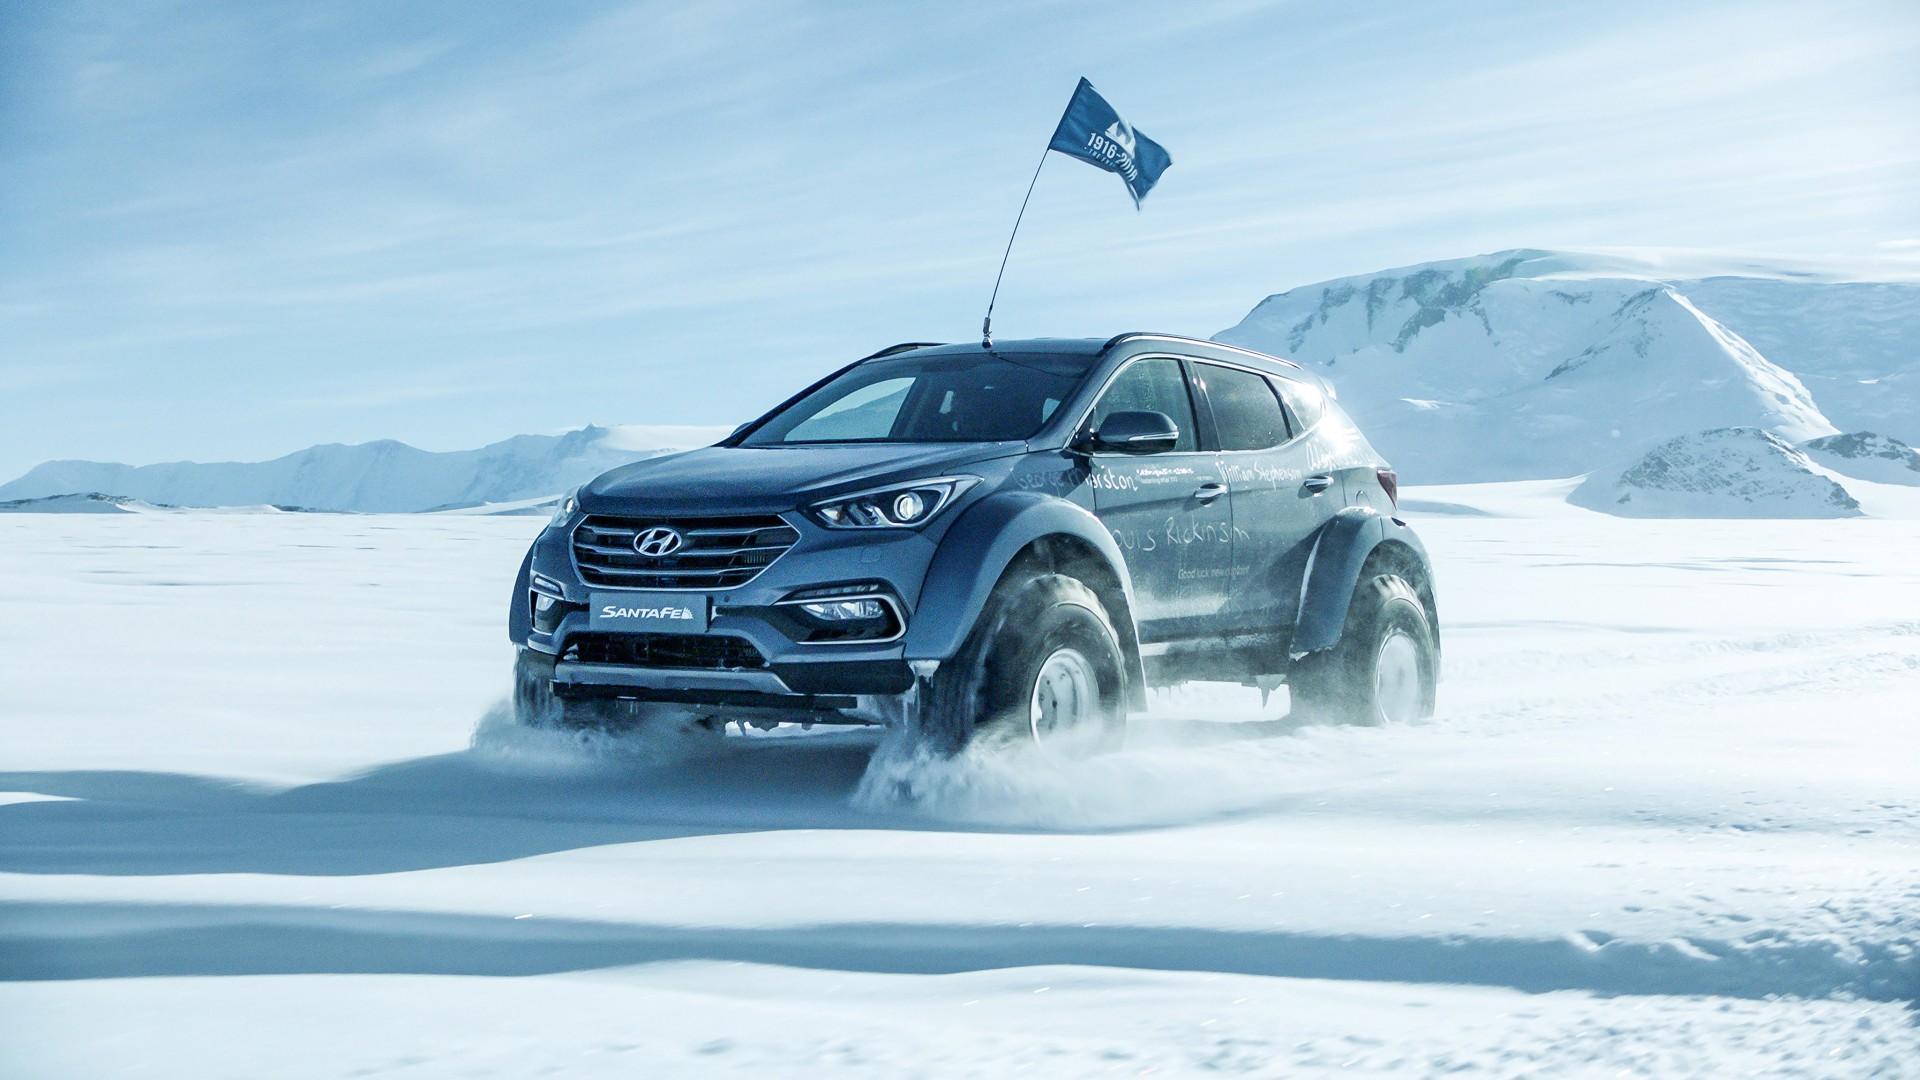 2017 Arctic Trucks Hyundai Santa Fe Wallpaper | HD Car ...